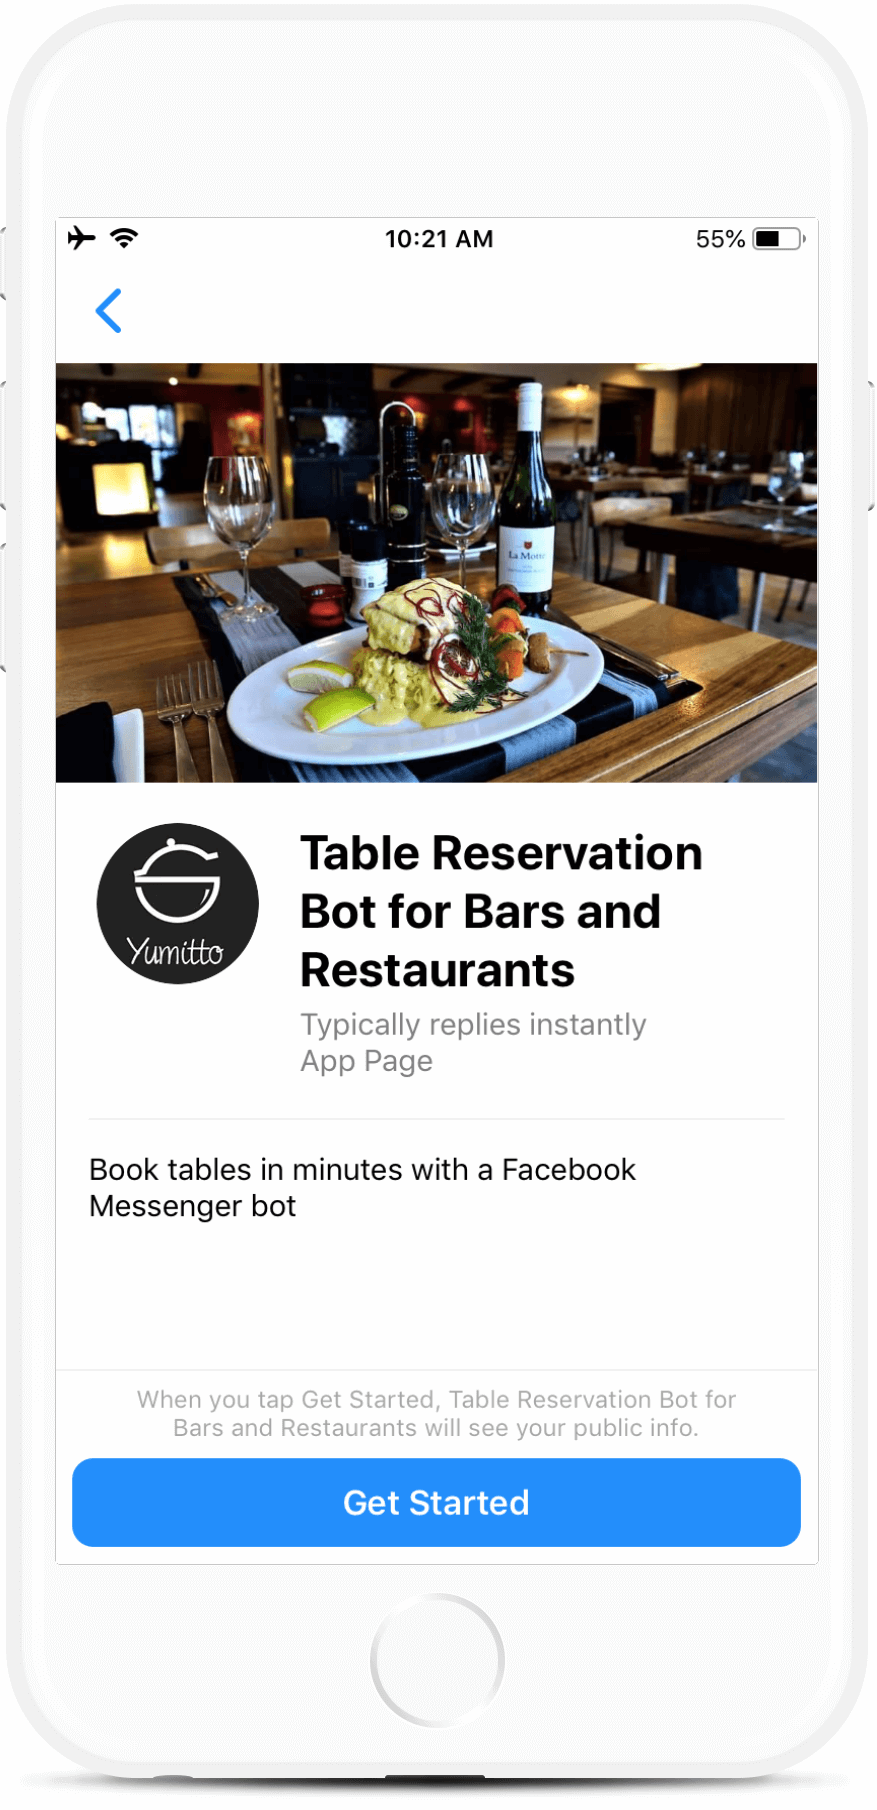 Table Reservation Bot for Bars and Restaurants - Botmakers